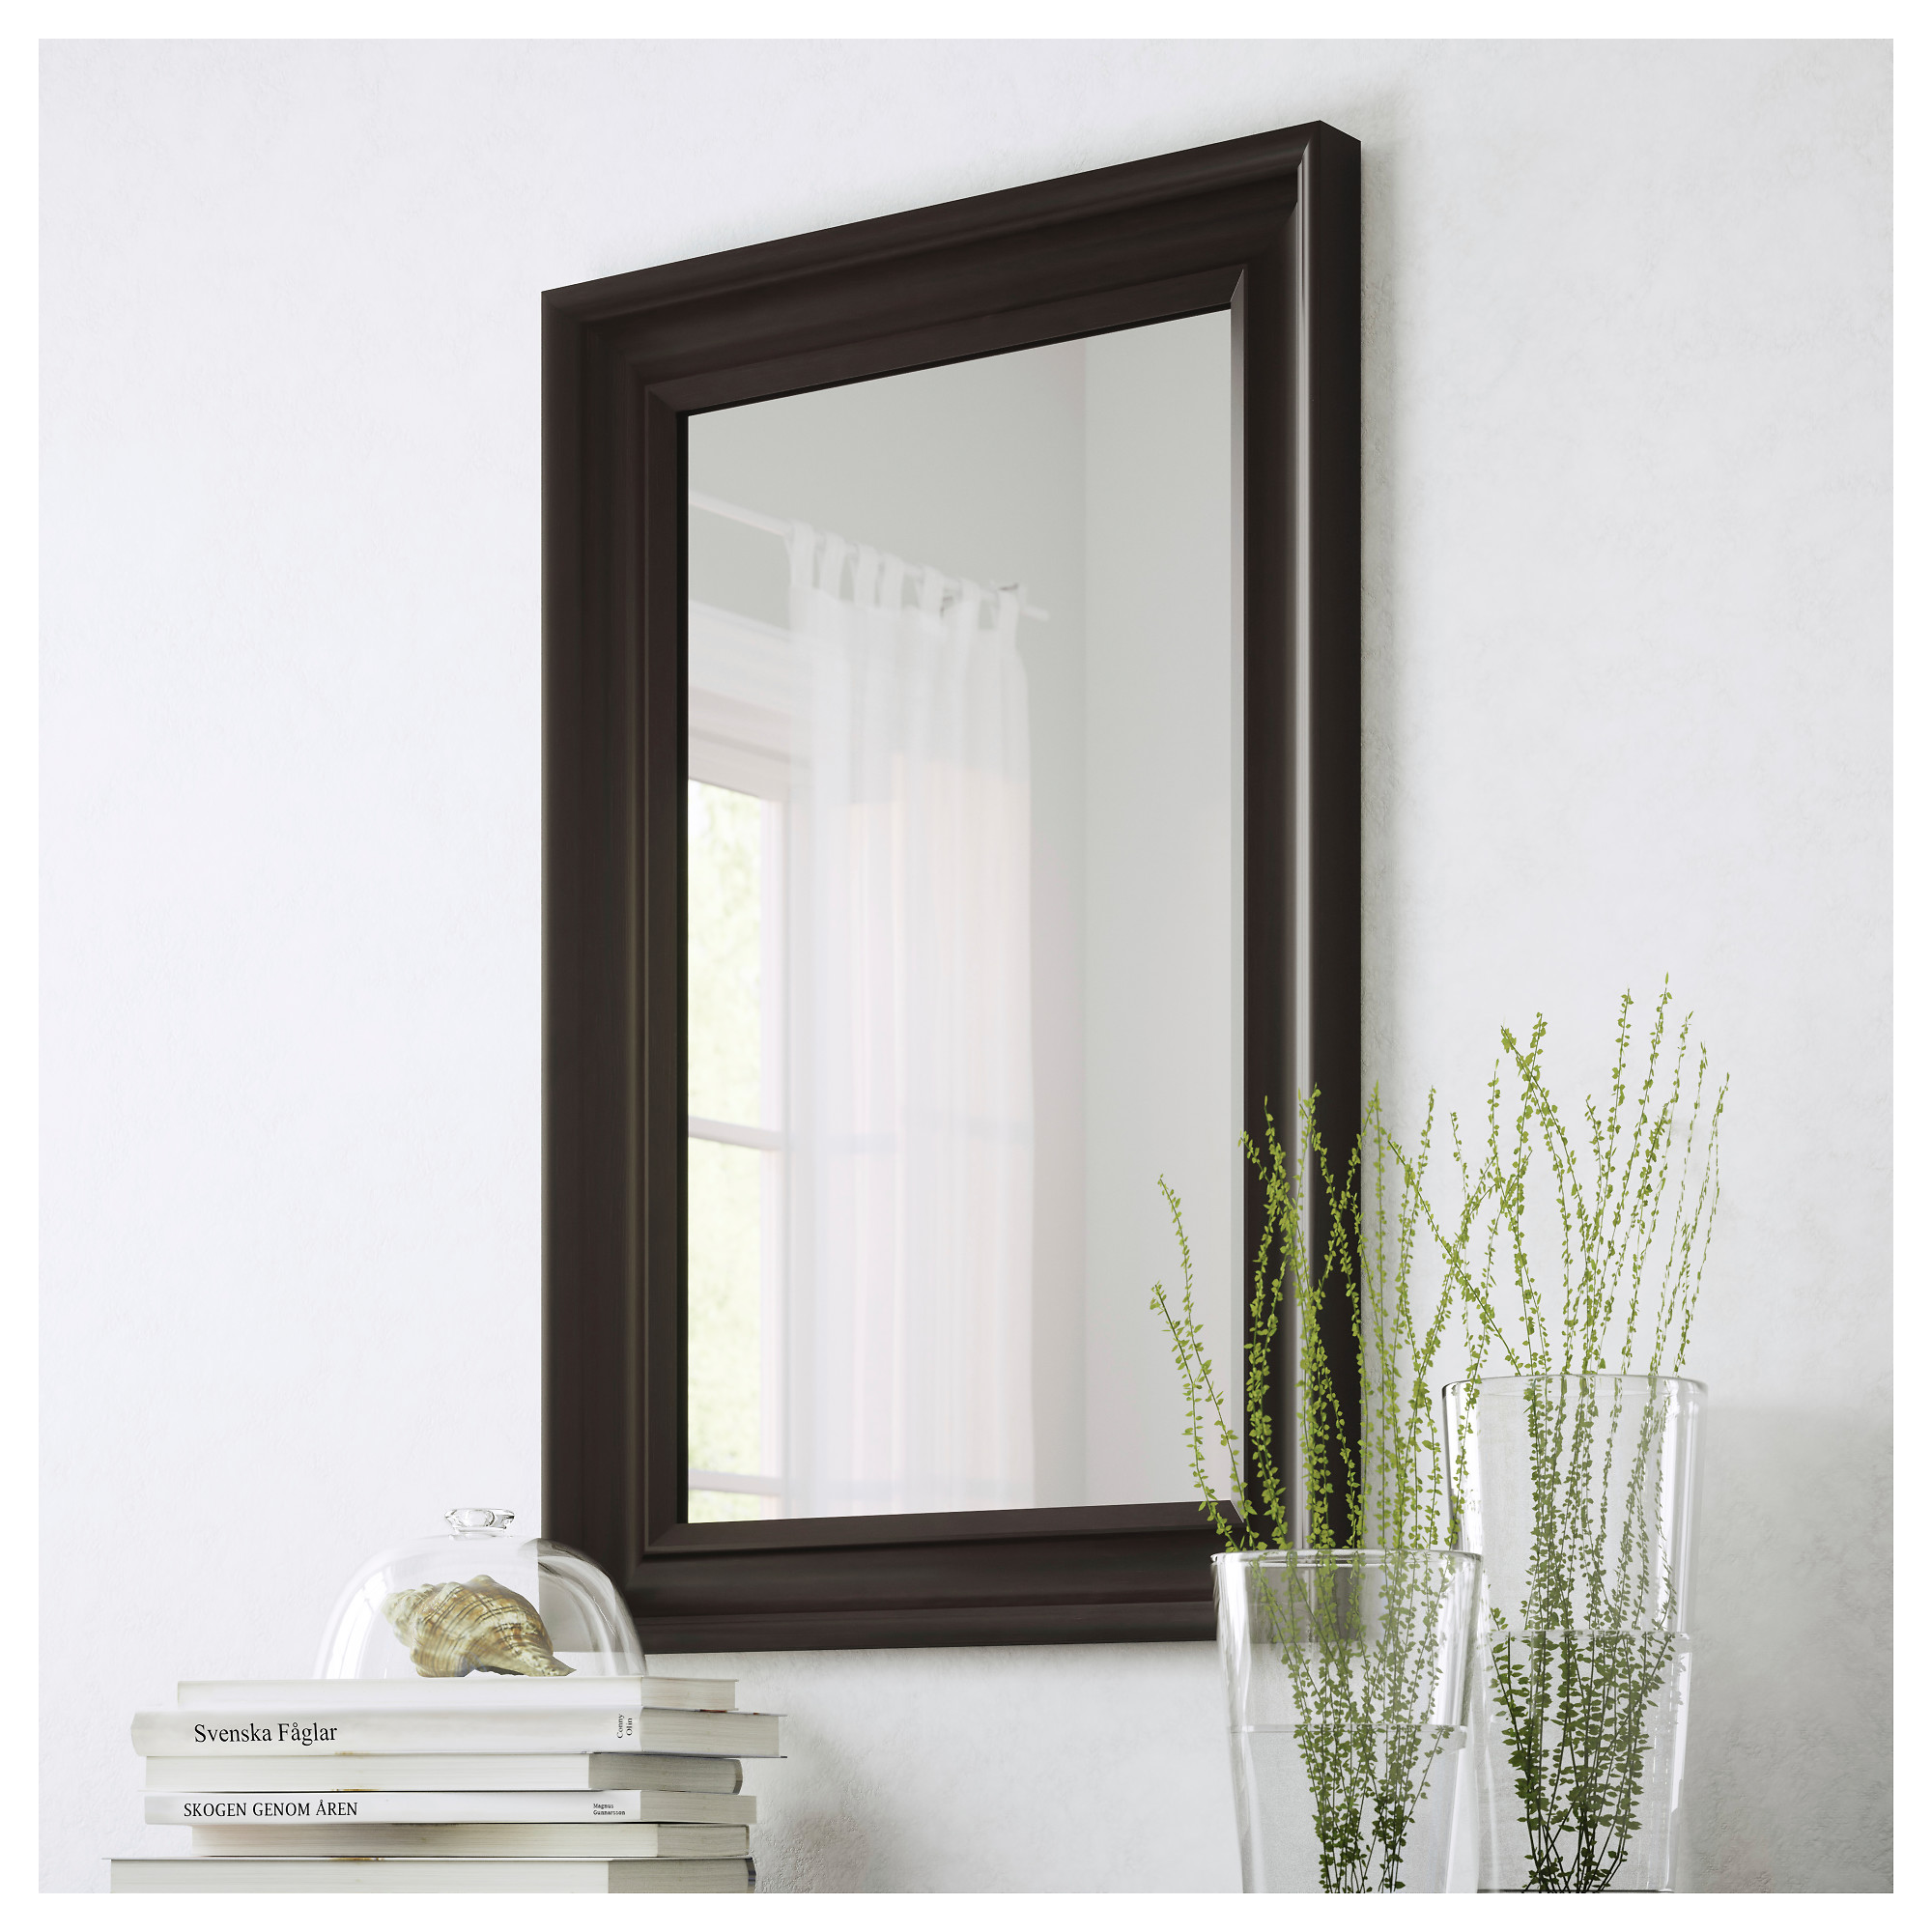 Framed Bathroom Mirrors At Ikea hemnes mirror - black-brown - ikea